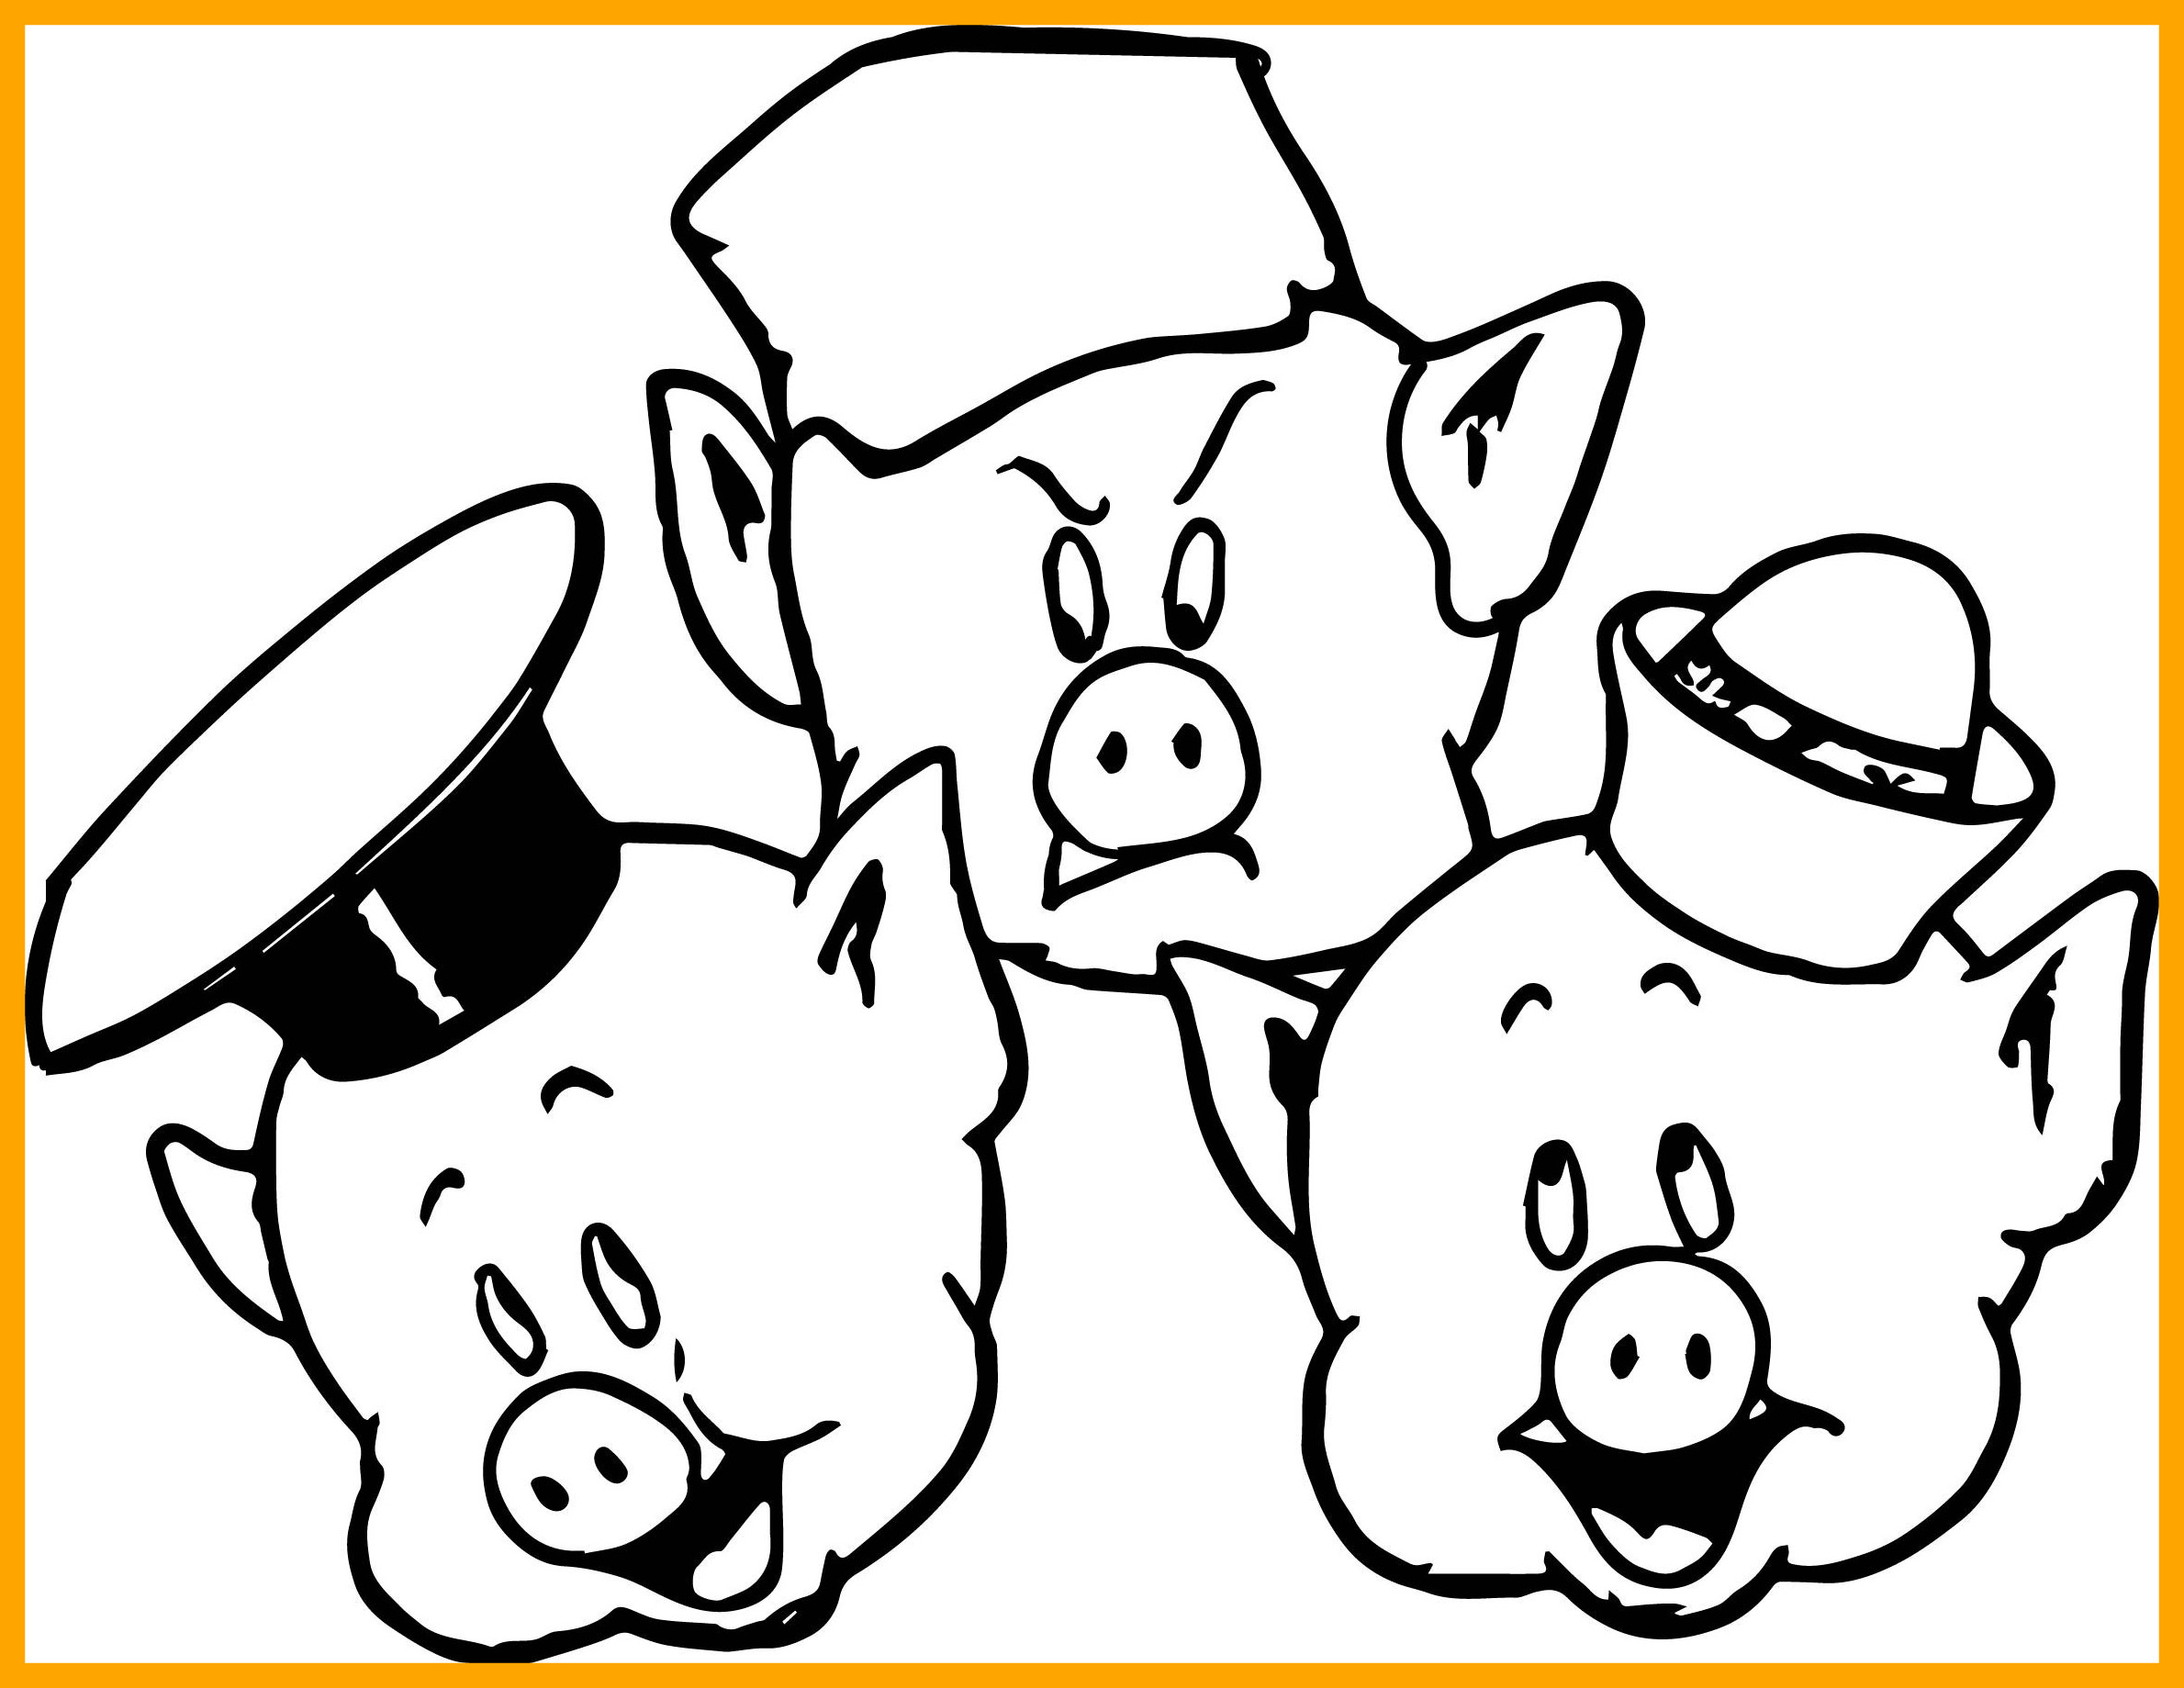 Cute Pig Coloring Pages At Getcolorings